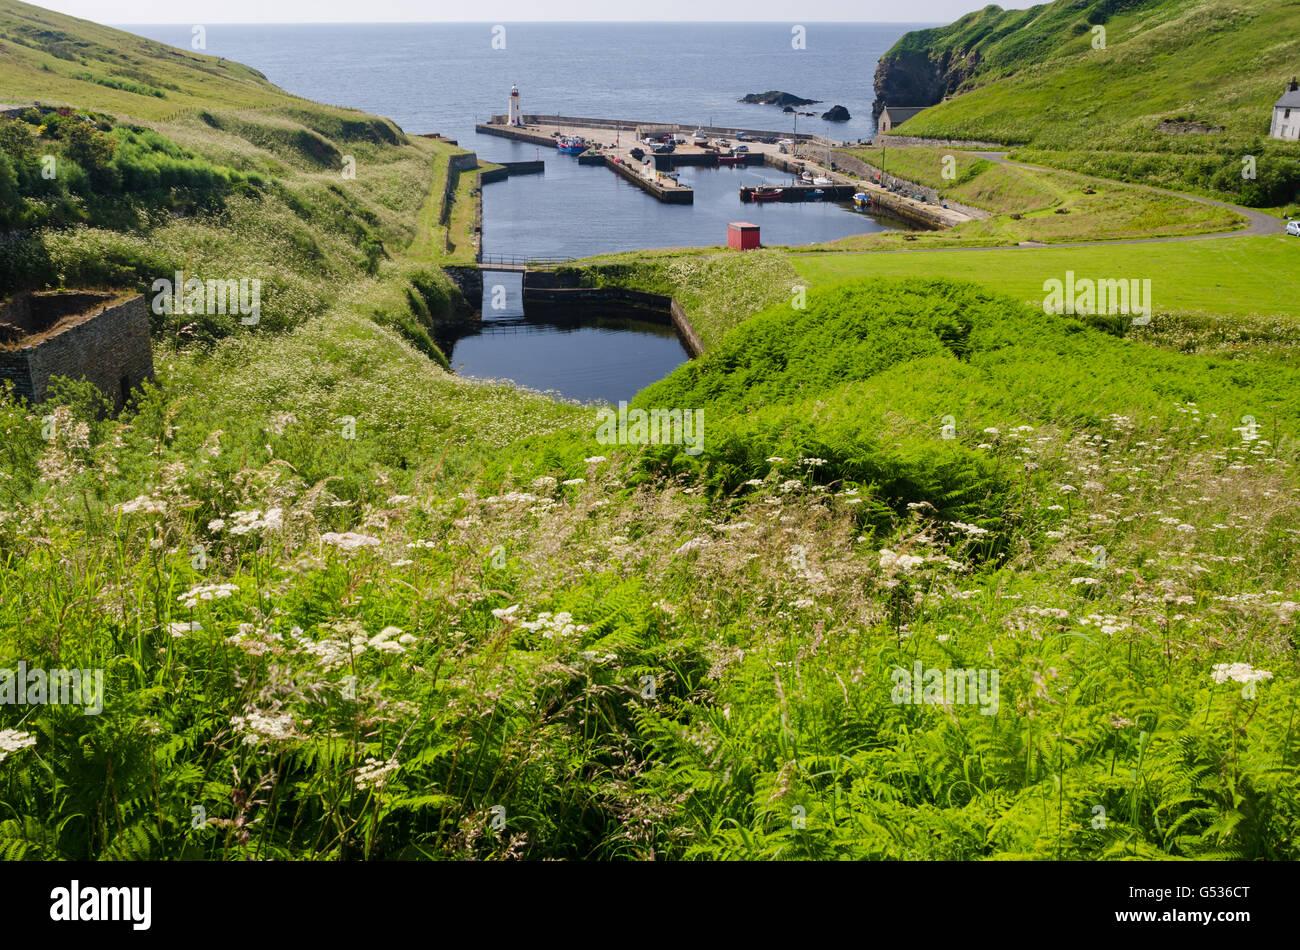 United Kingdom, Scotland, Highlands, Lybster, Lybster of Caithness in northern Scotland, Former fishing port - Stock Image